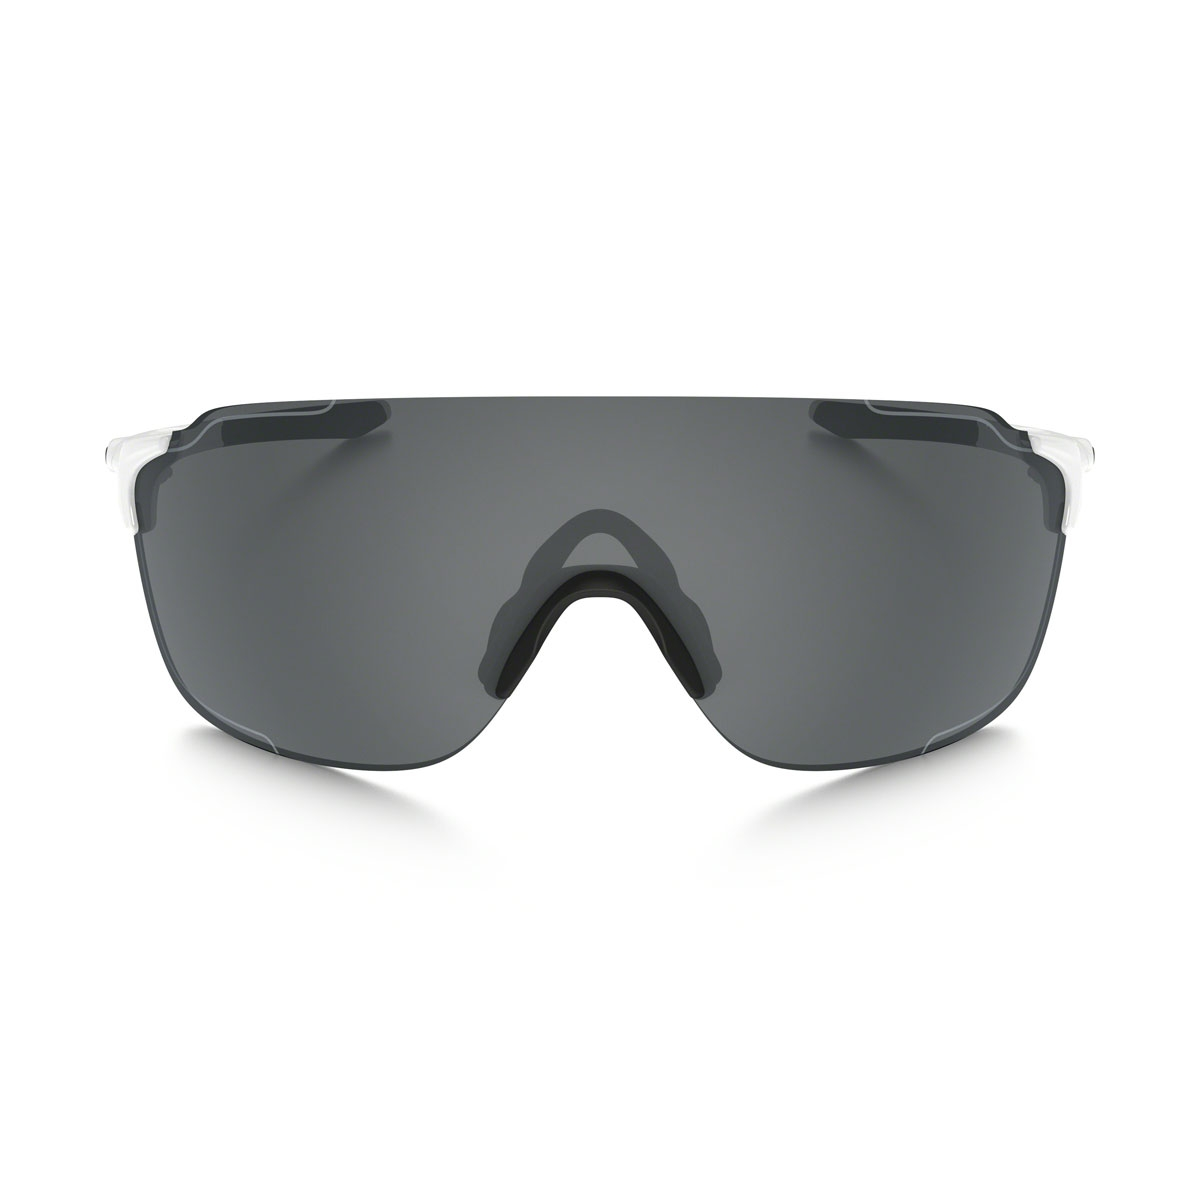 714f2edd344 ... Image of Oakley EVZero Stride Sunglasses - Polished White Black Iridium